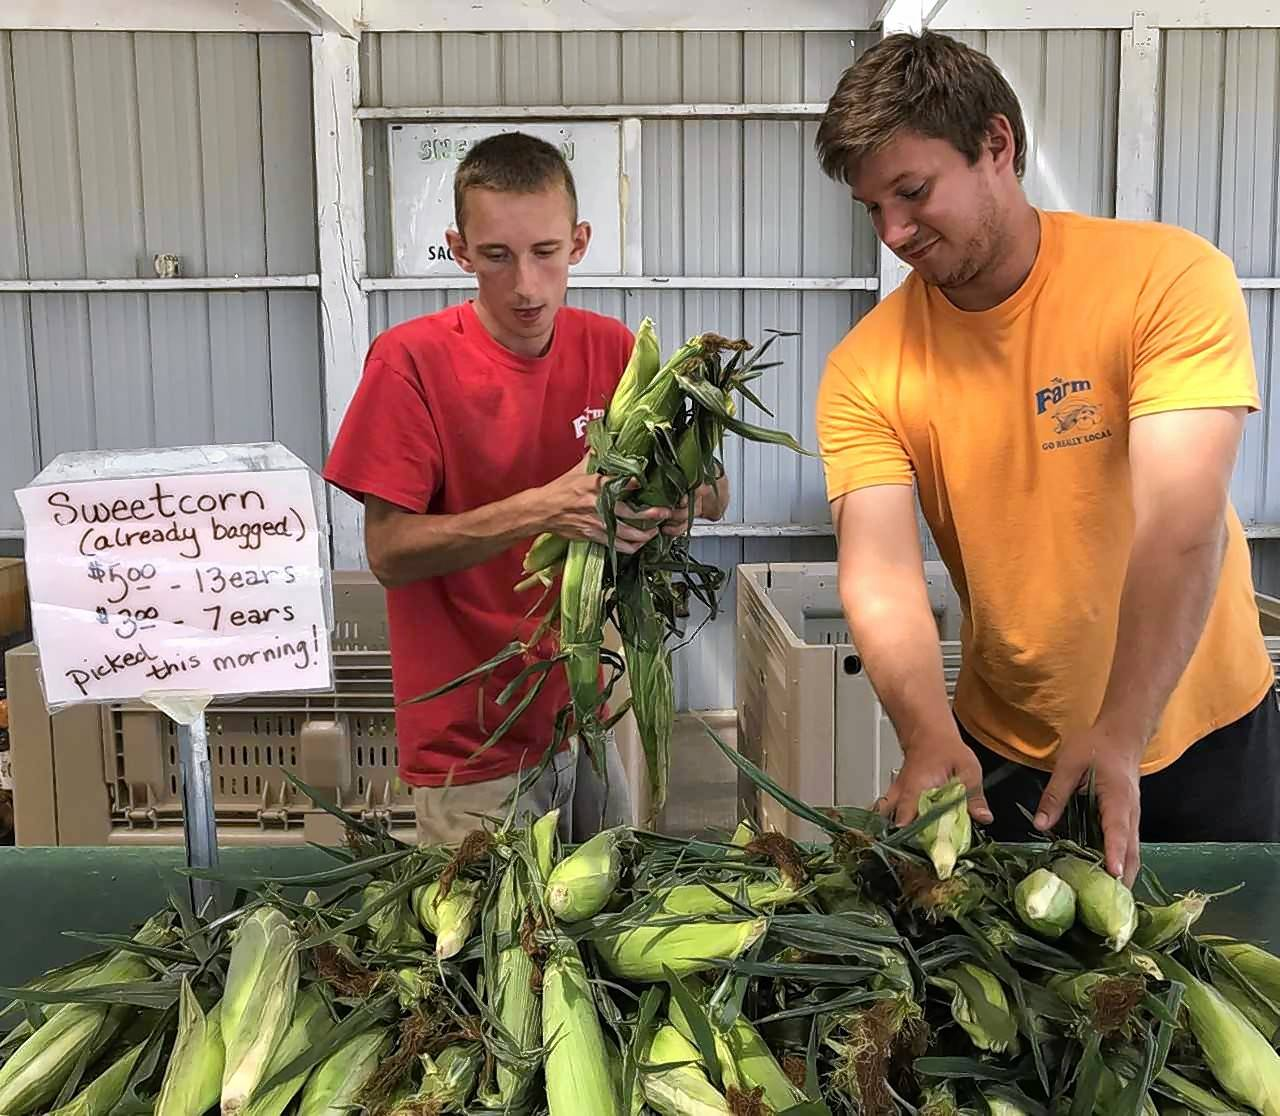 The first day of selling sweet corn is like a holiday at The Farm stand in Carol Stream. The corn generally is ready to picked the week after July Fourth. And customers are ready before then.